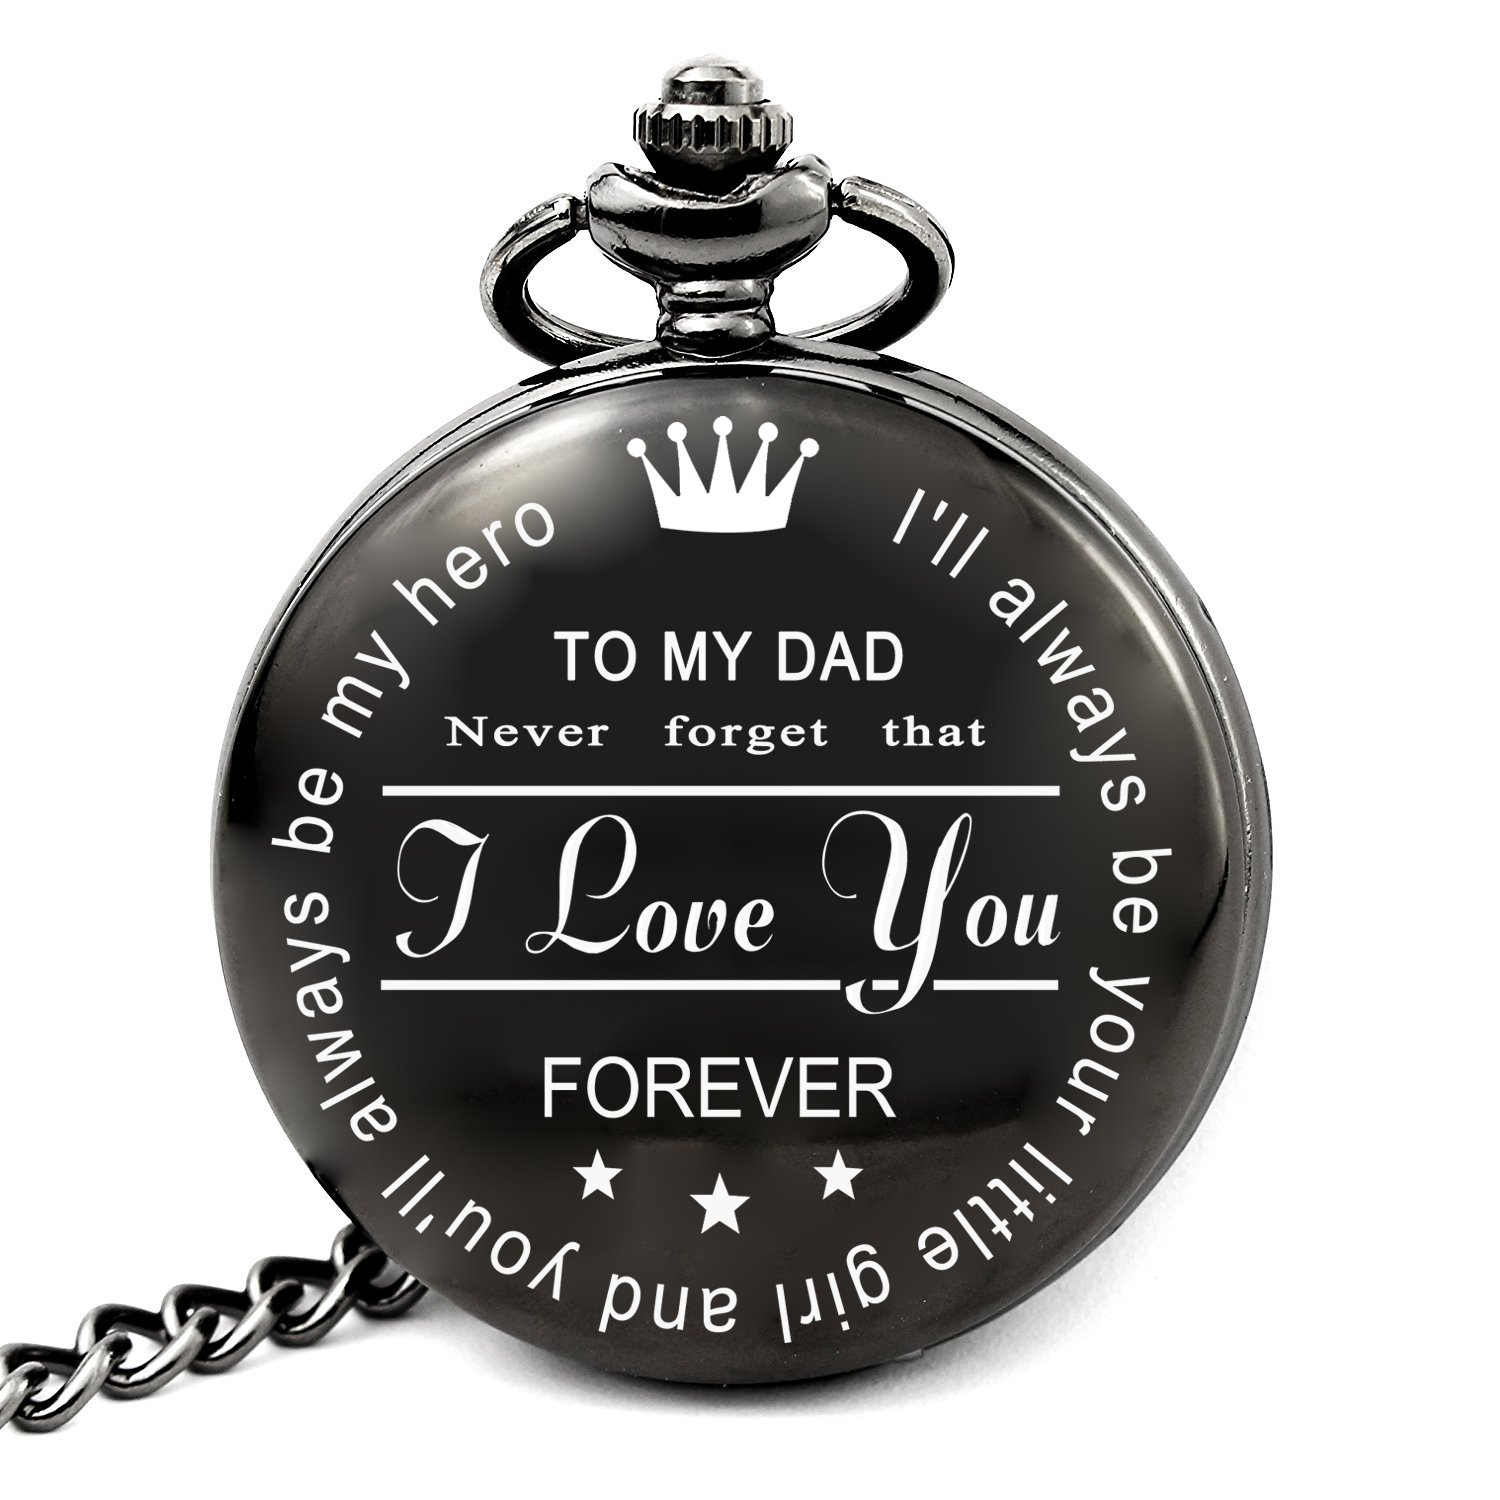 LEVONTA Best Dad Gifts for Dad Birthday Christmas Fathers Day - I'll Always Be Your Little Girl You'll Always Be My Hero